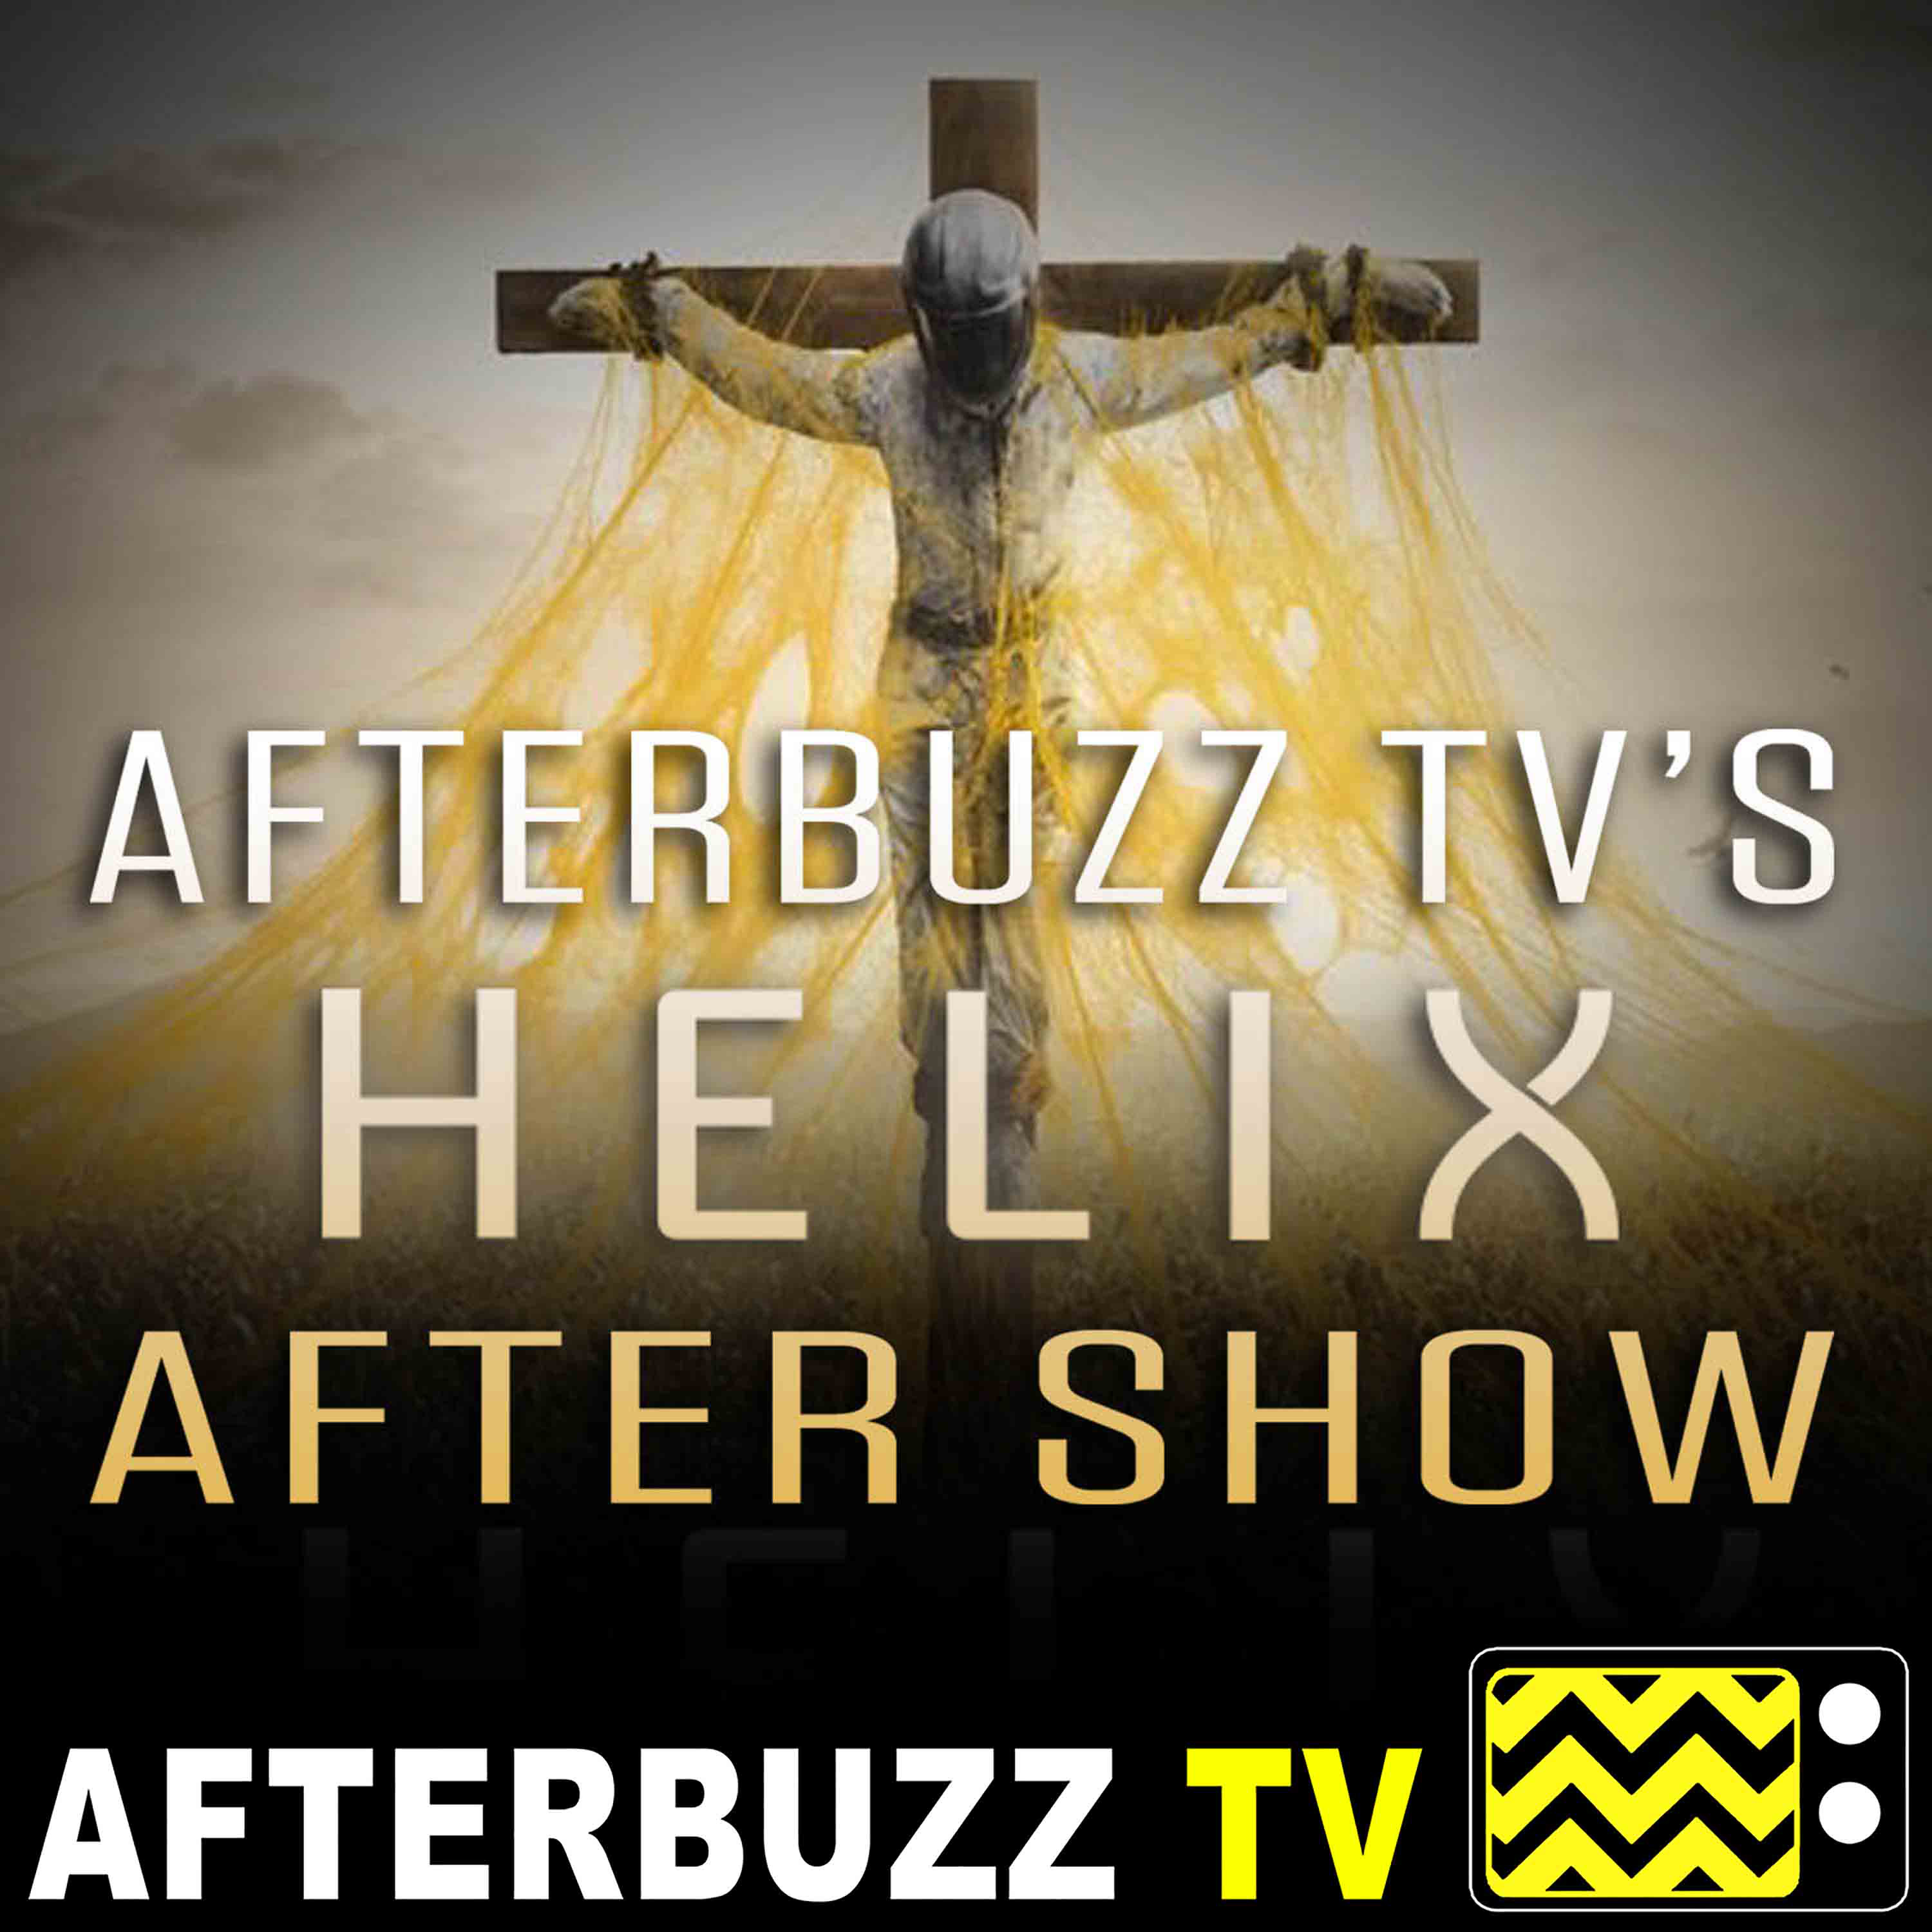 Helix Reviews and After Show - AfterBuzz TV